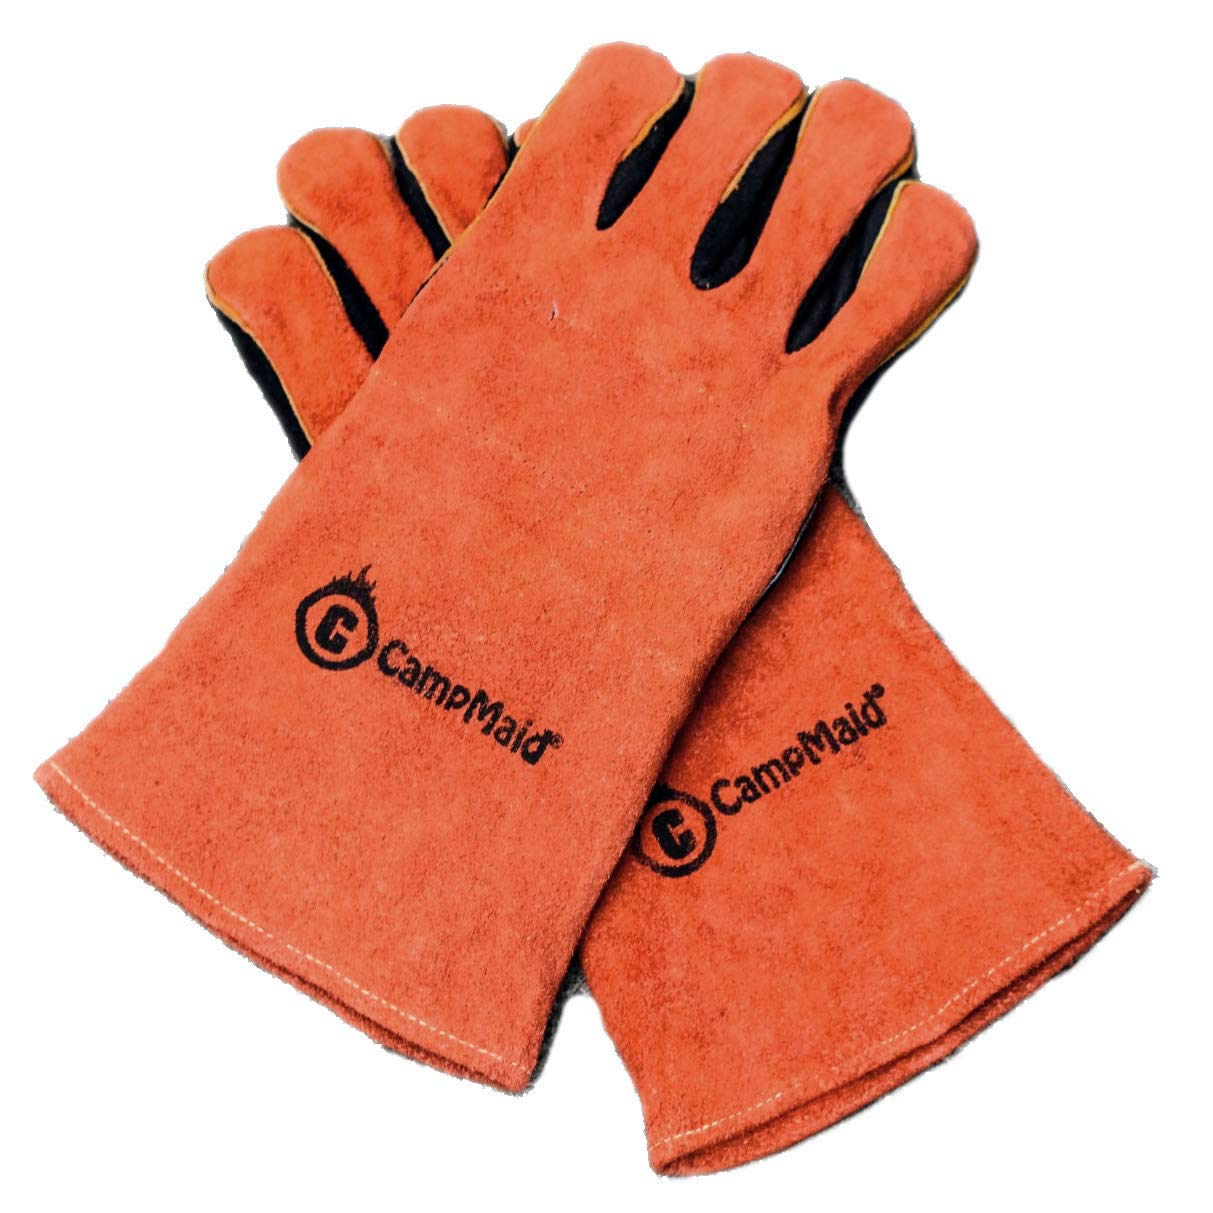 CampMaid Leather Gloves – Compact and Portable Cooking Gloves – Premium Quality – Heat Resistant Gloves with Soft Cotton Lining – Camping, Hunting, Picnic Cookout – Reliable Survival Tool